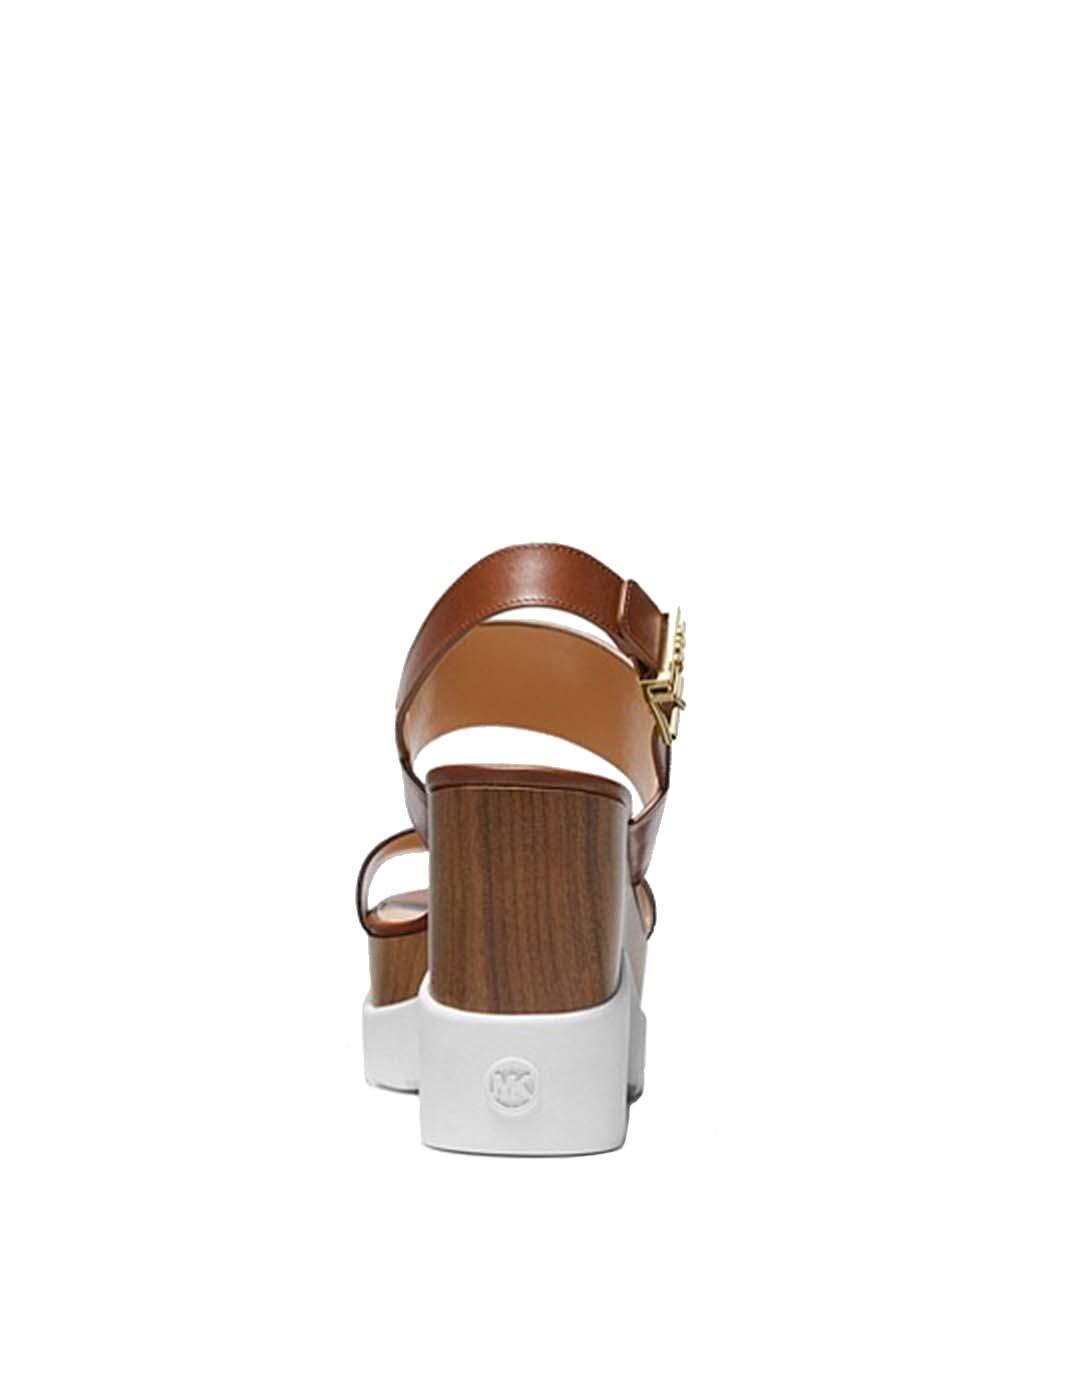 Sandalias Michael Kors marrones de cuña Rhett Wedge